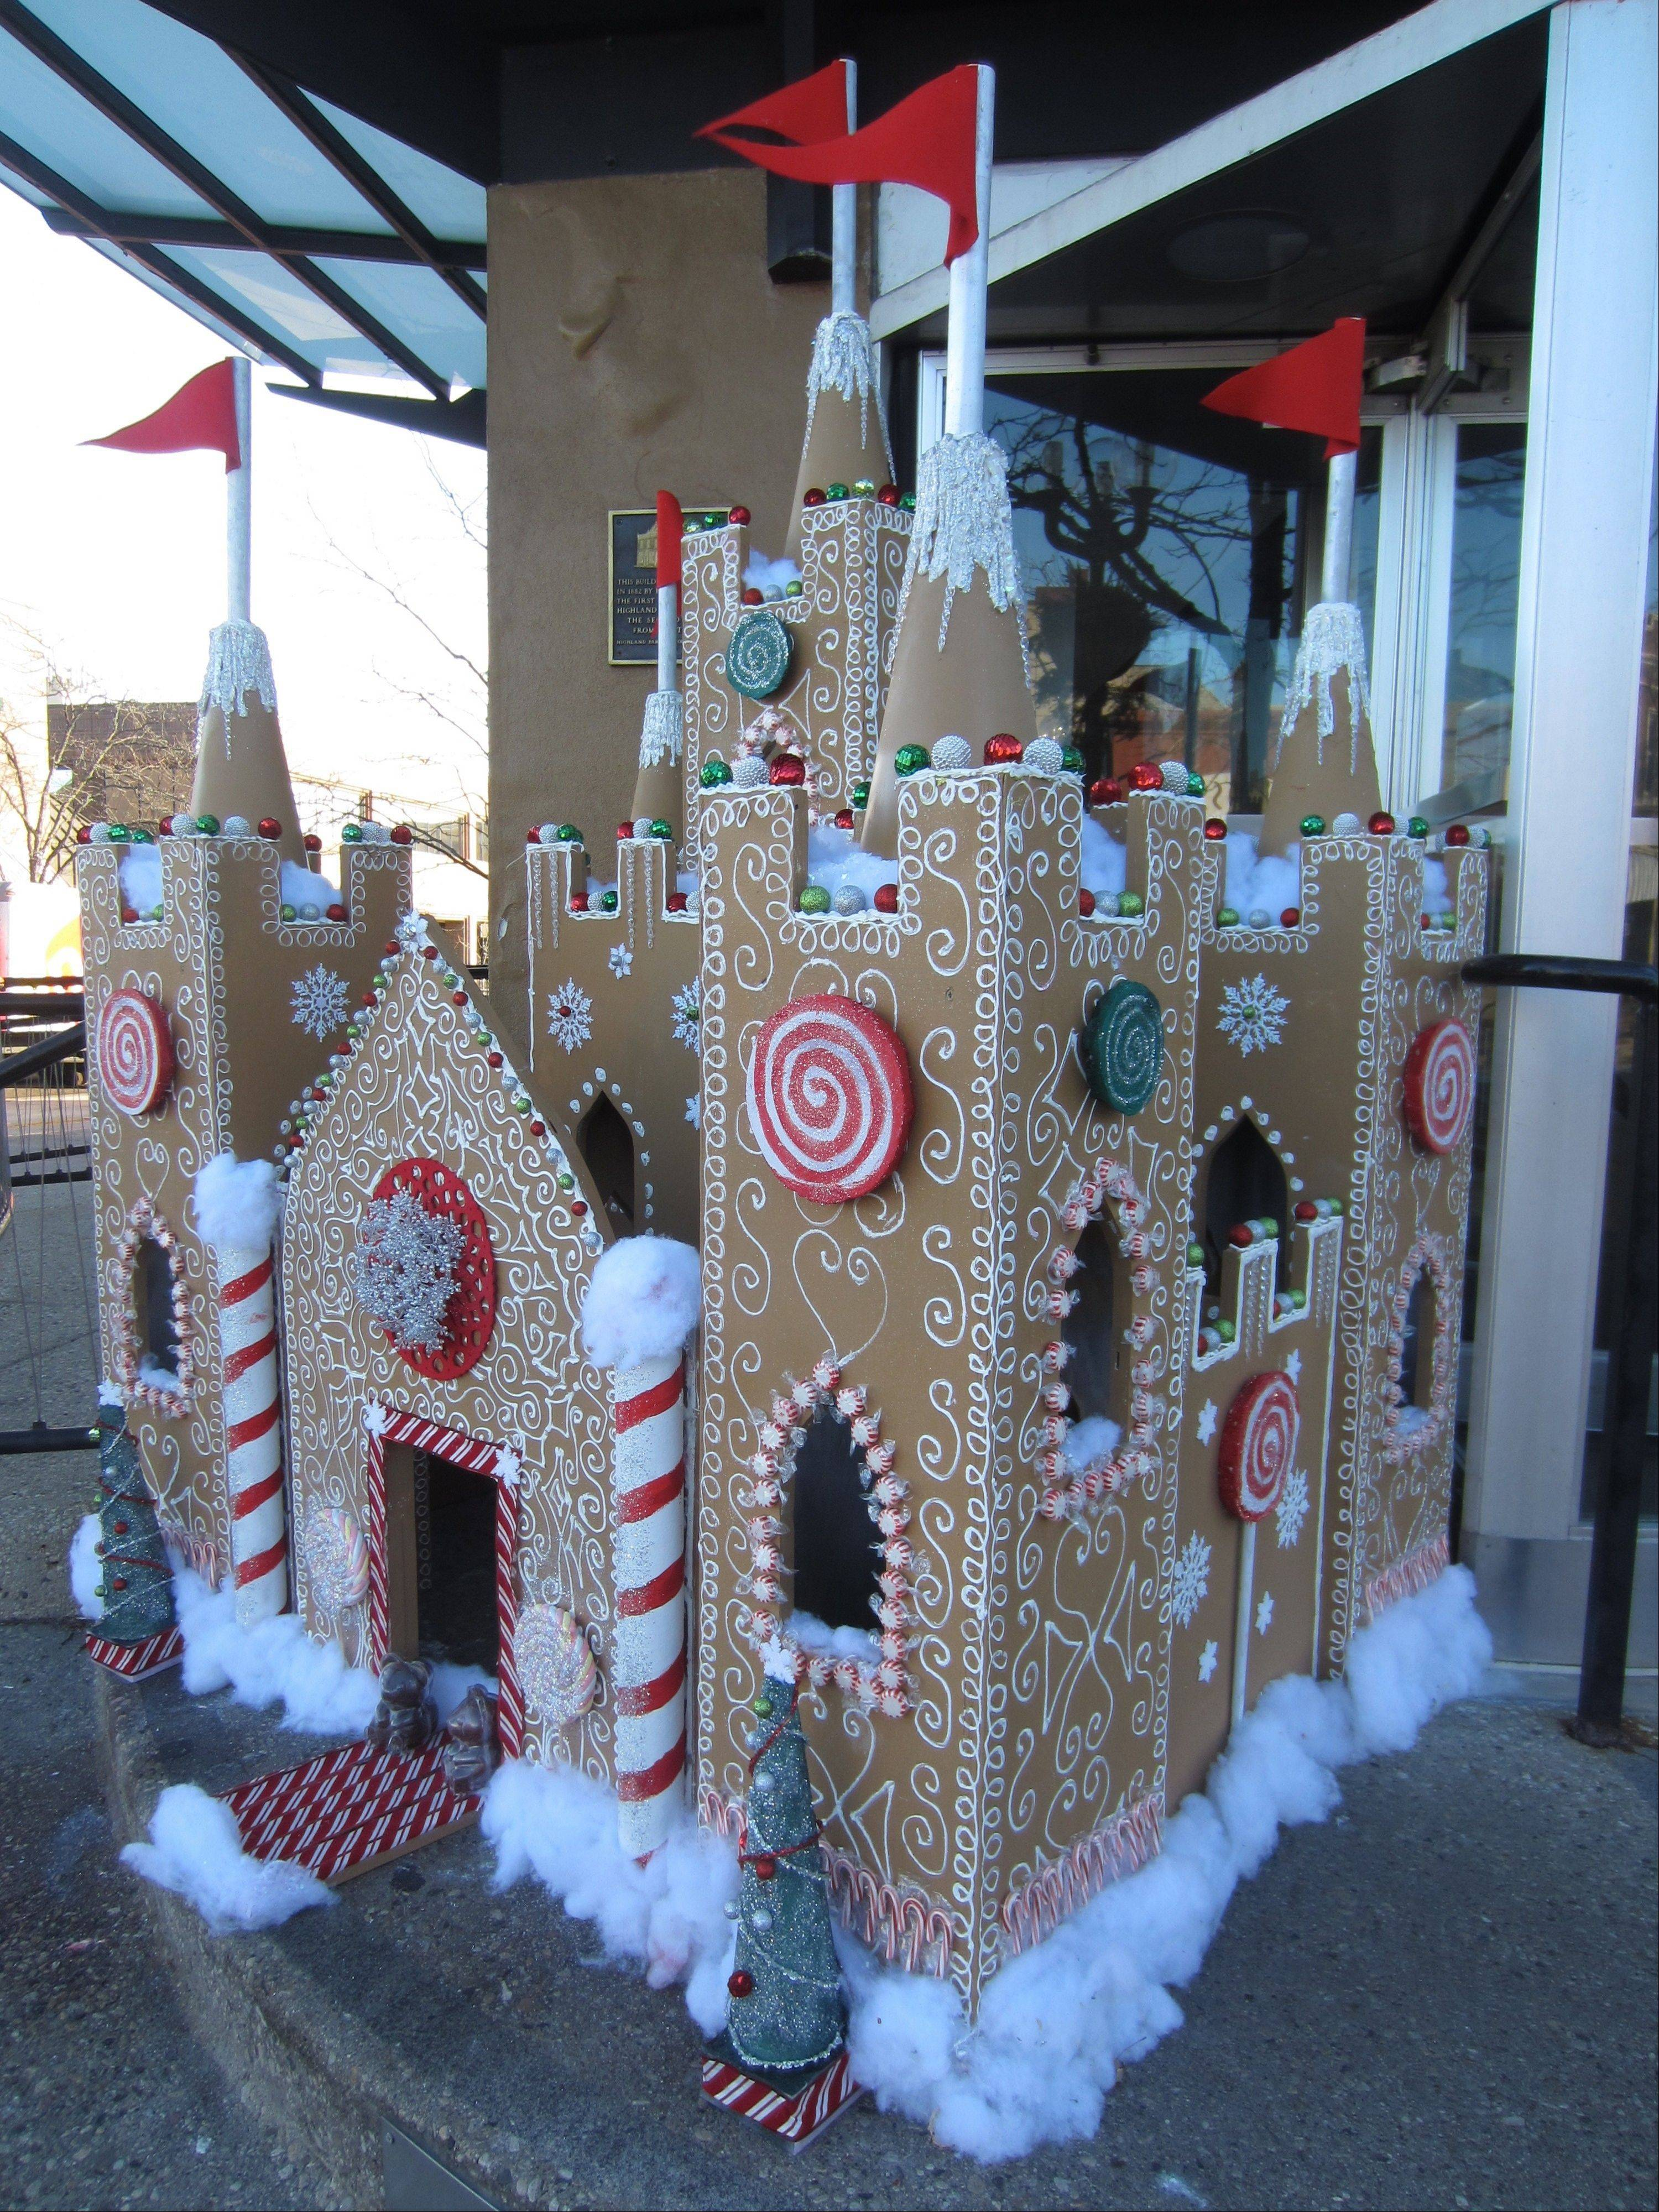 A gingerbread house is among the decoration in Downtown Highland Park's Winter Wonderland, with carriage rides, unique shops, live reindeer and other holiday festivities, Dec. 14.